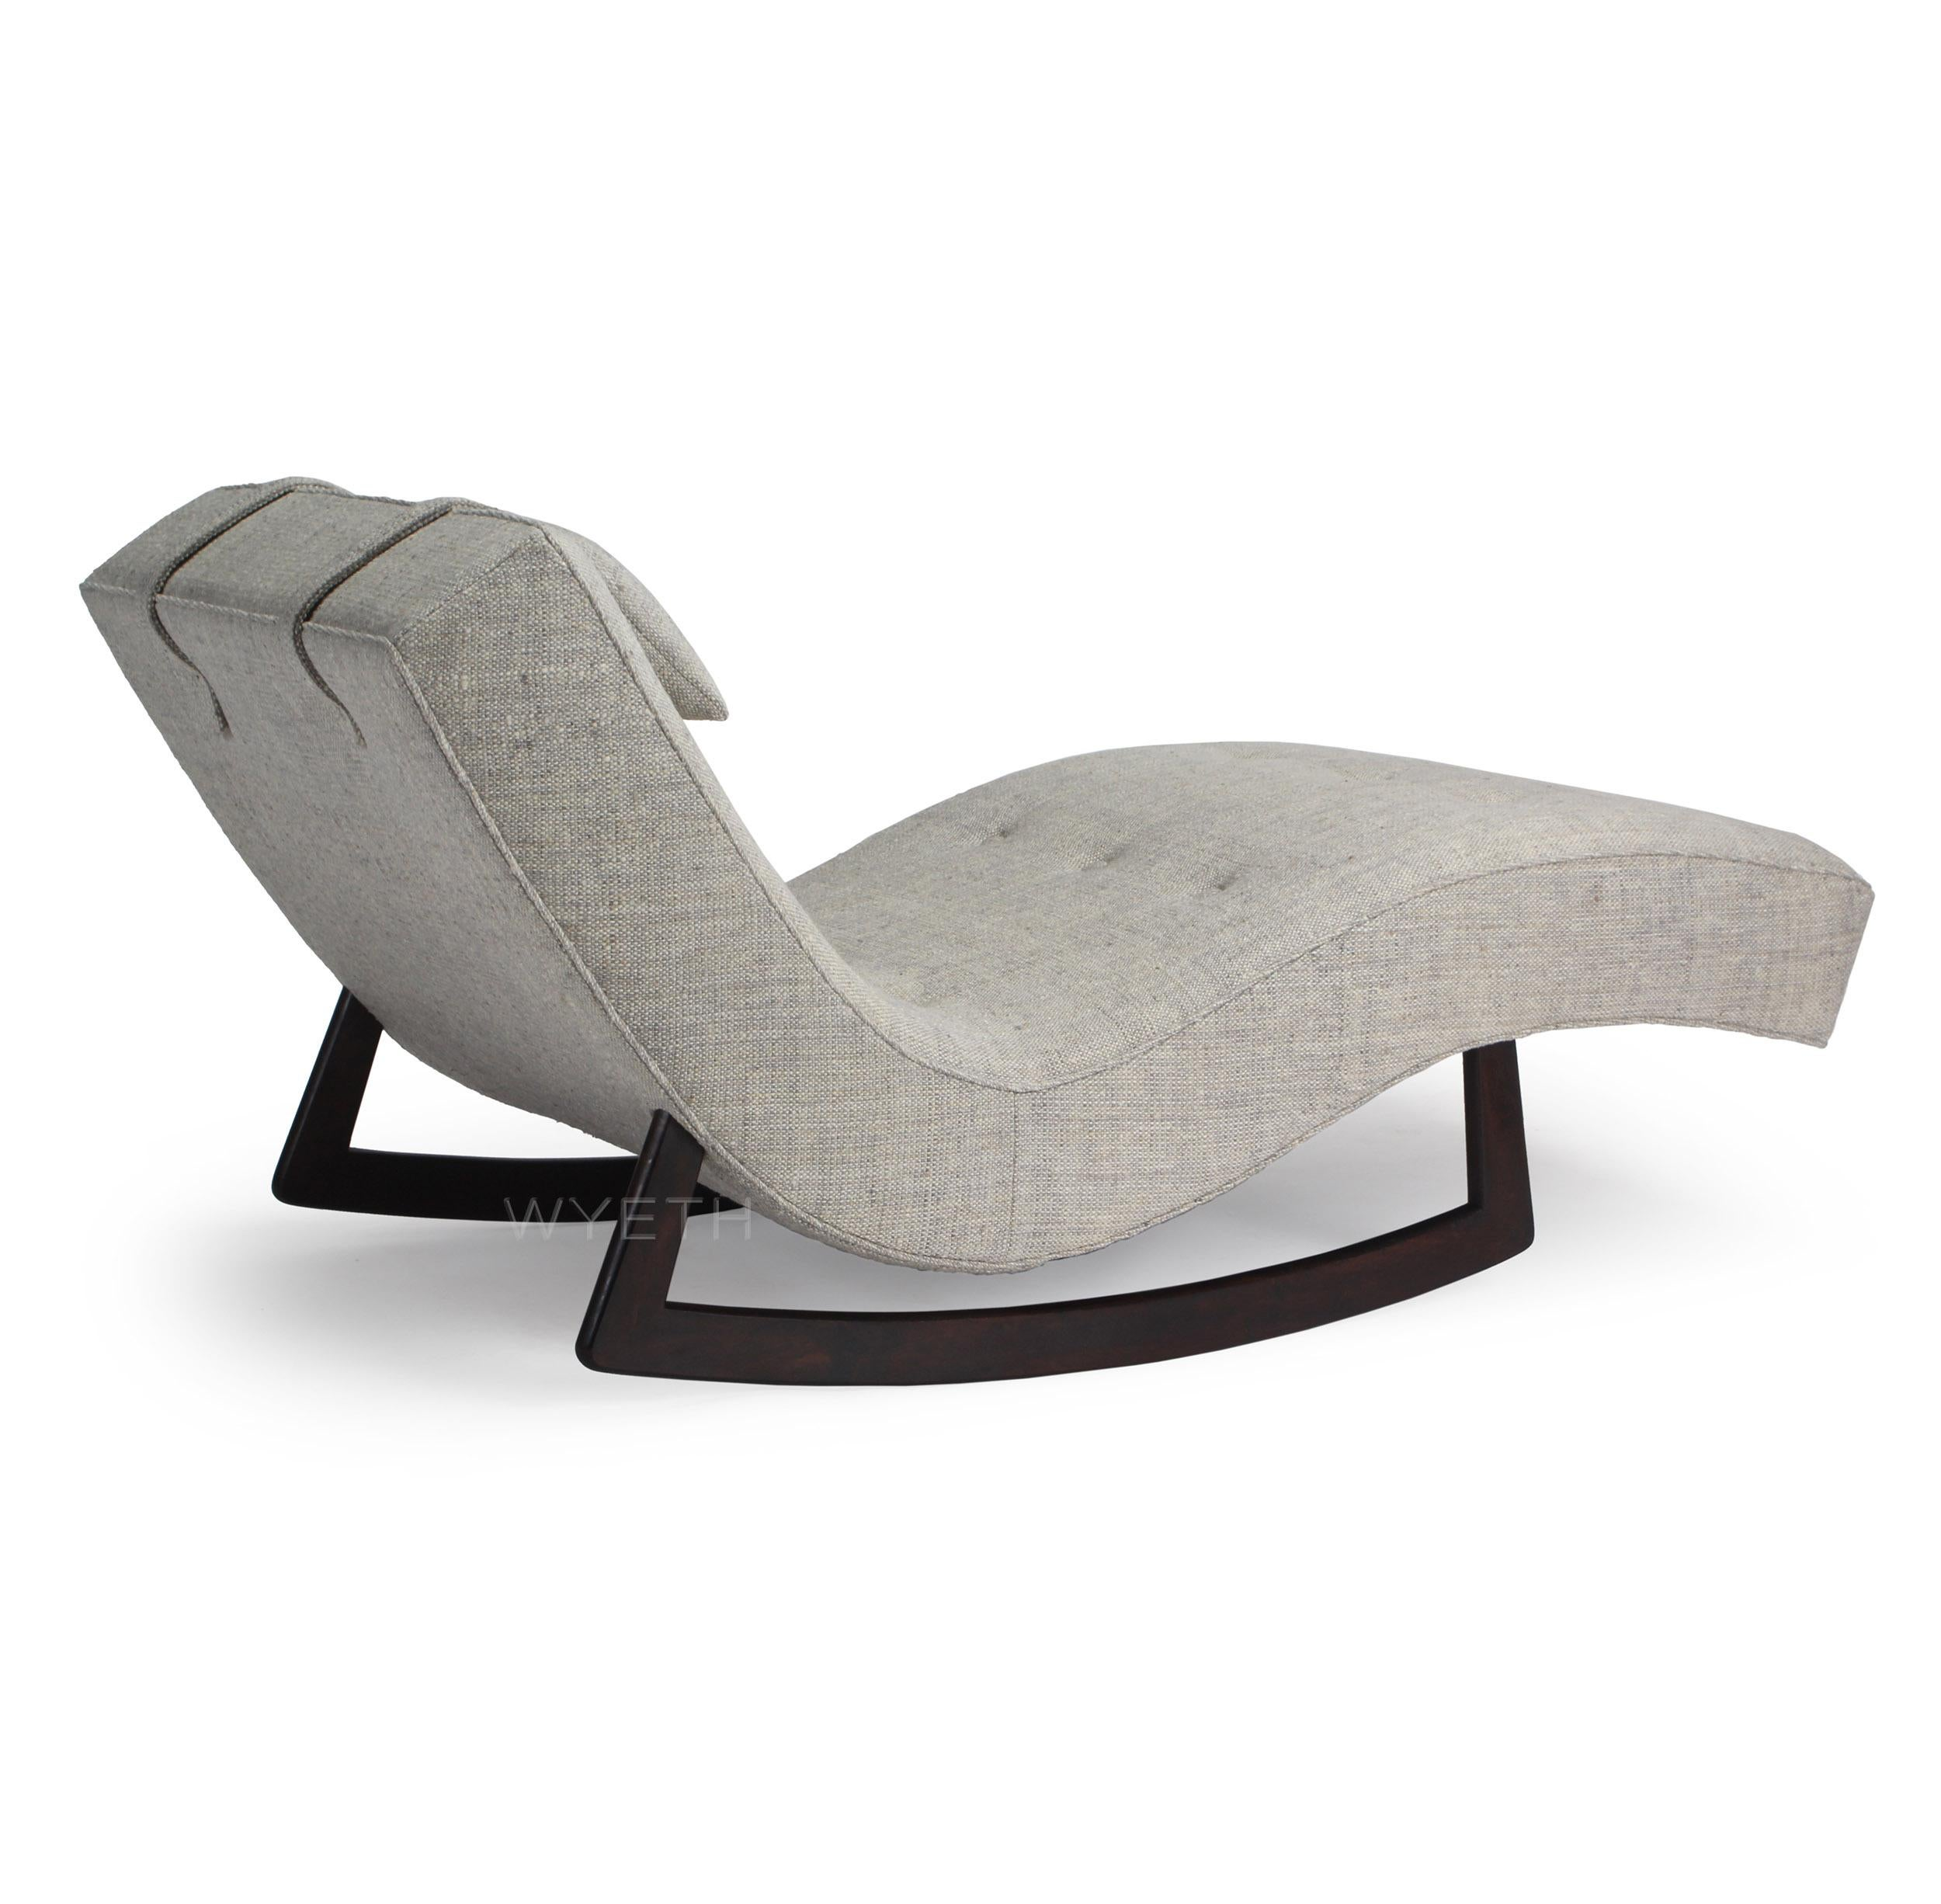 Chaise Rocking Chair Low Rocking Chaise By Adrian Pearsall